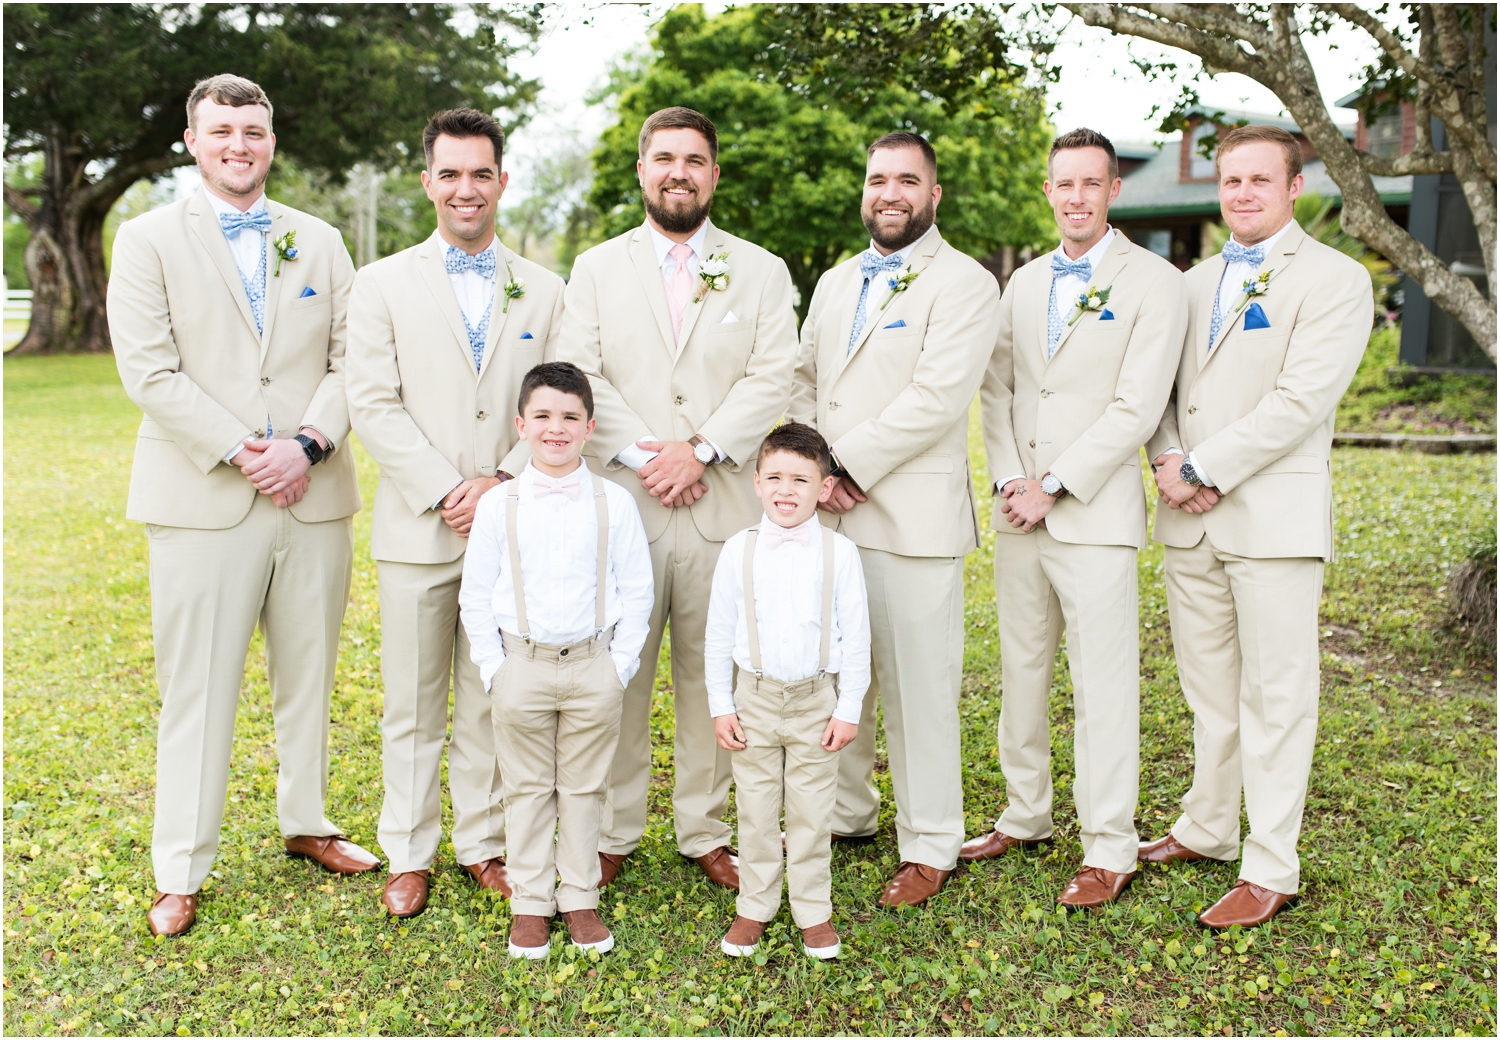 Sowell Farms Milton Florida Rustic Woodsy Barn Wedding Photographer groom groomsmen